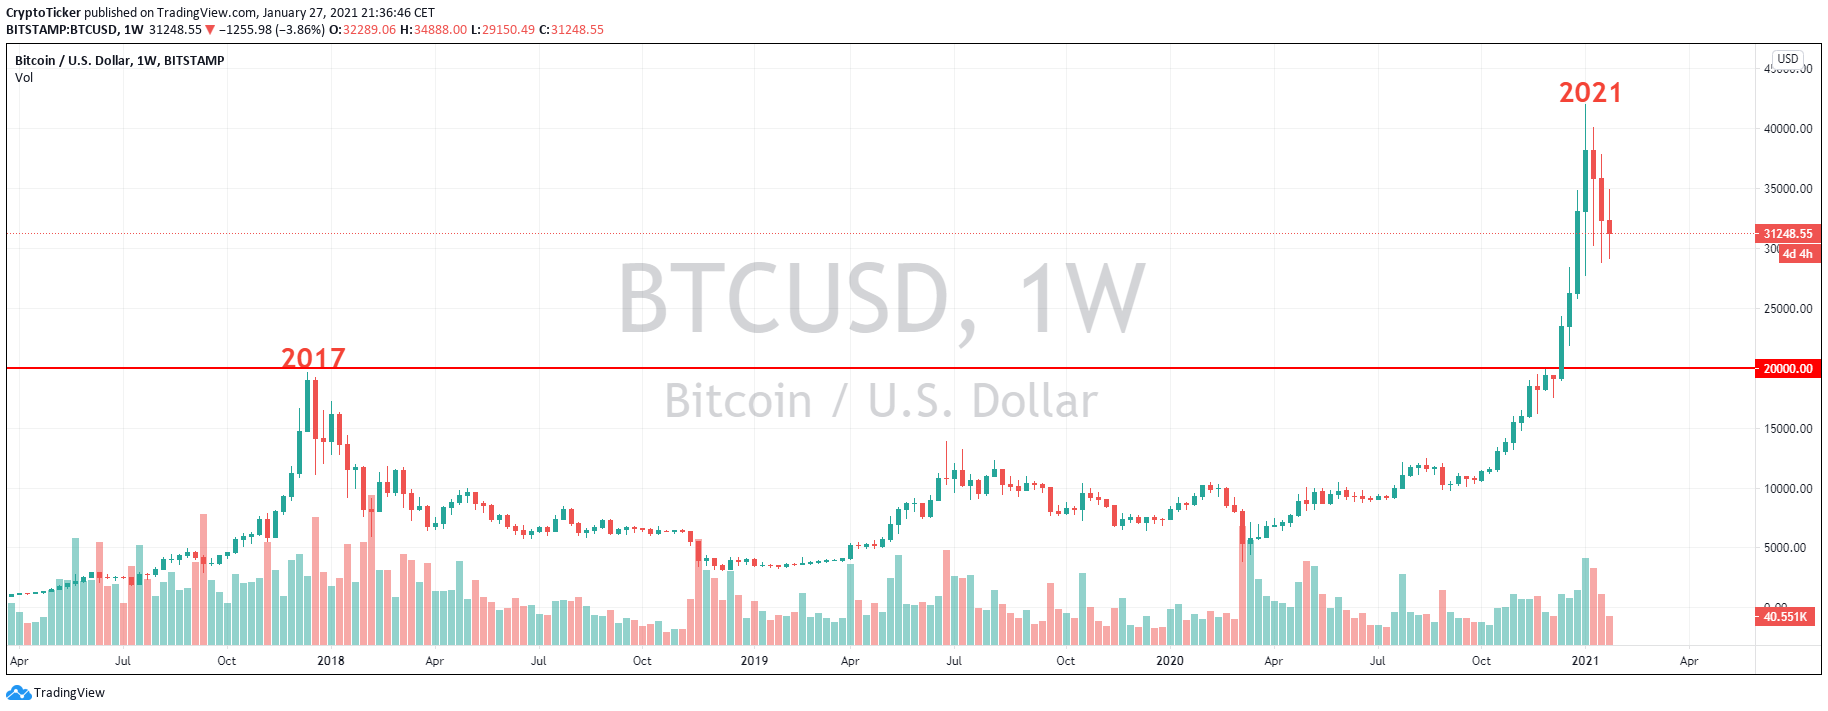 BTC/USD 1-Week chart showing a contrast between 2017 and 2021